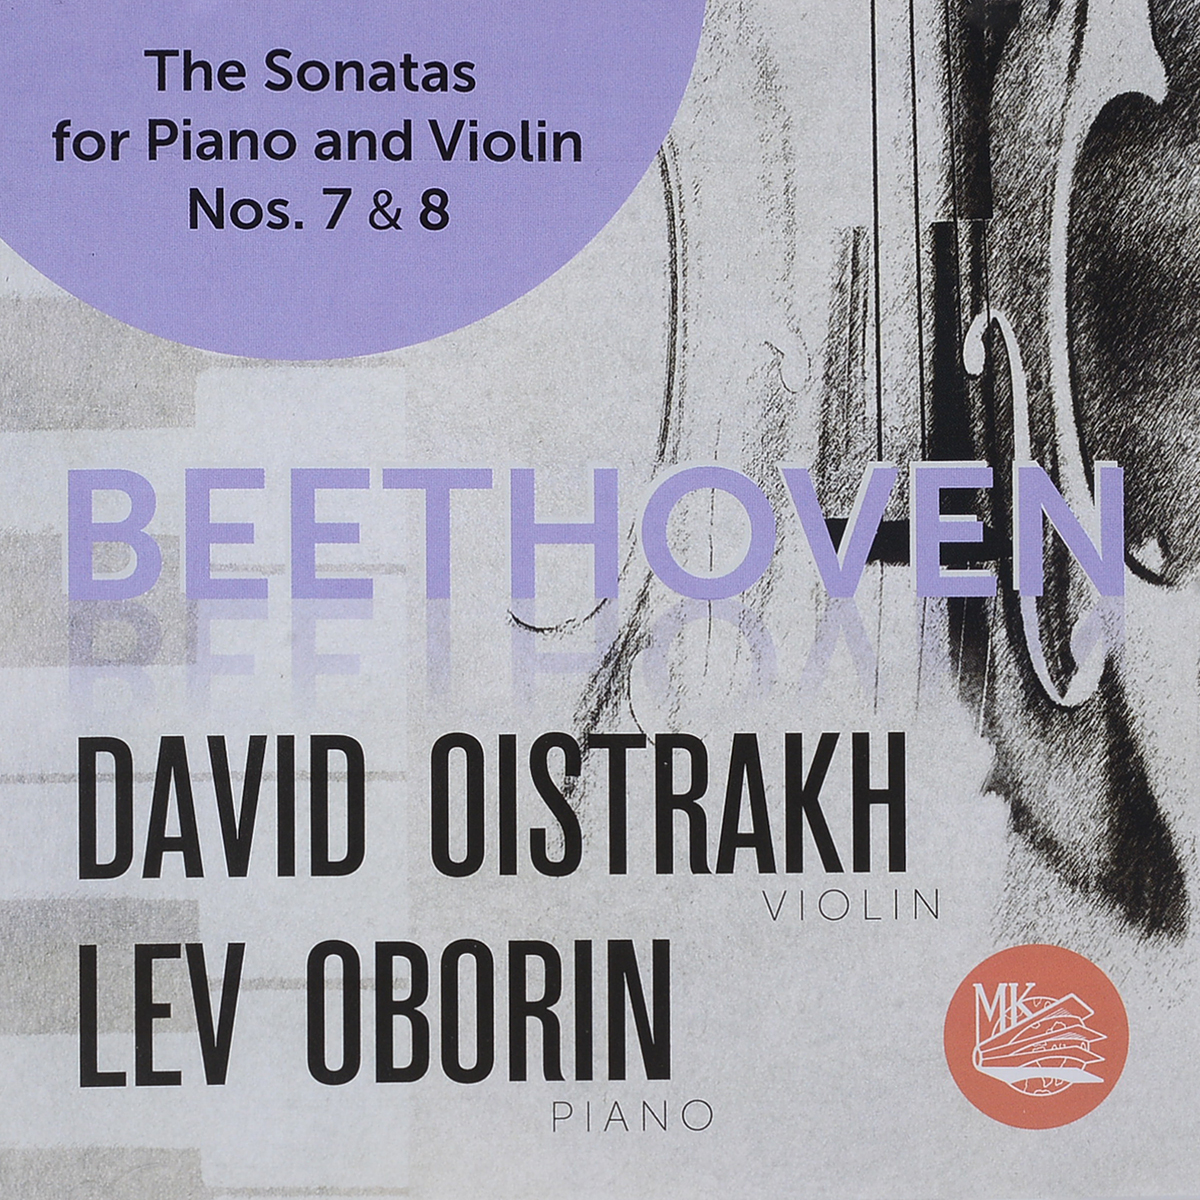 Давид Ойстрах,Лев Оборин David Oistrakh. Lev Oborin. Beethoven. The Sonatas For Piano And Violin No. 7 & 8